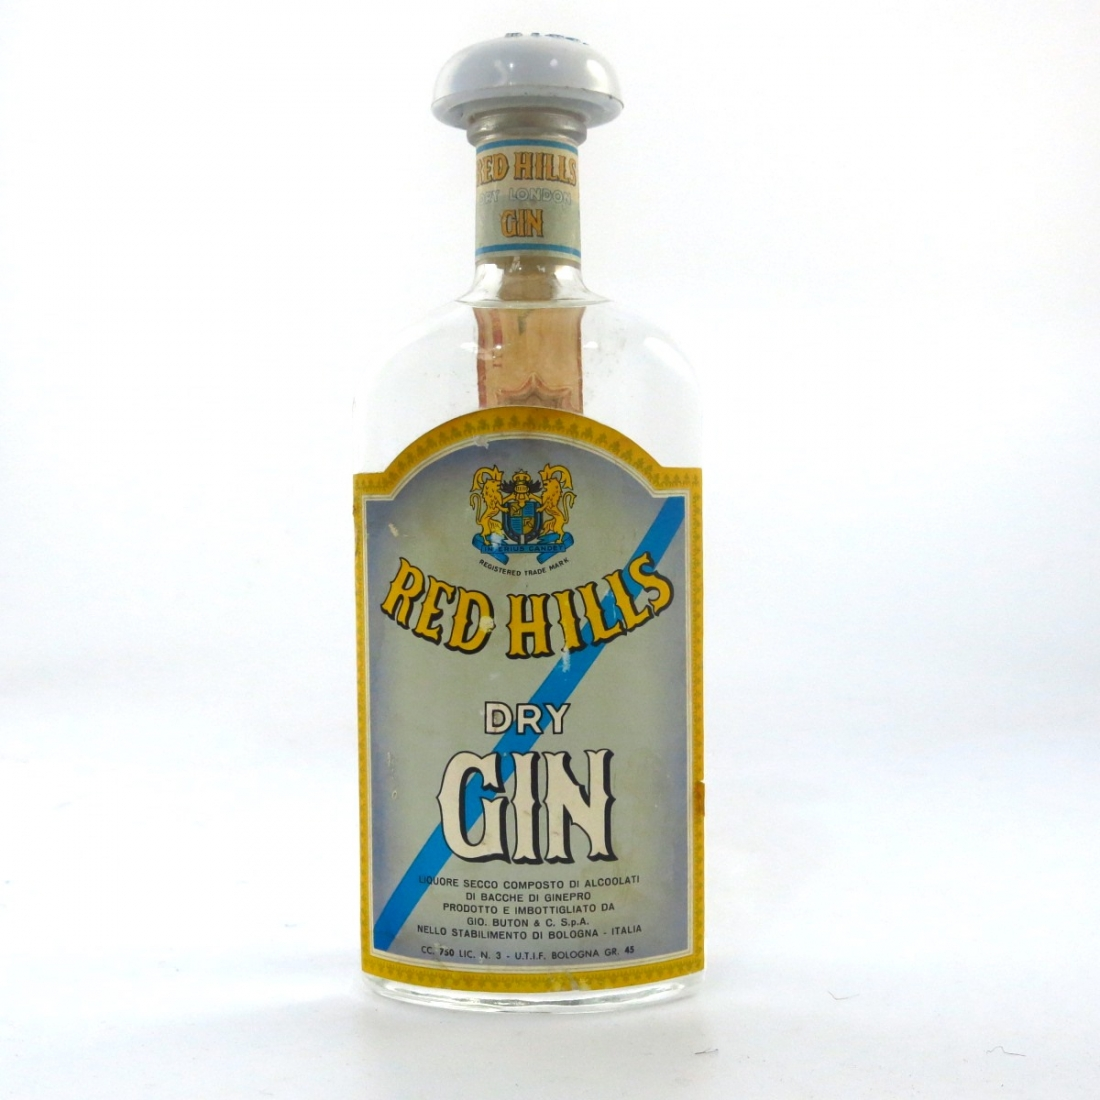 Red Hill's Dry London Gin